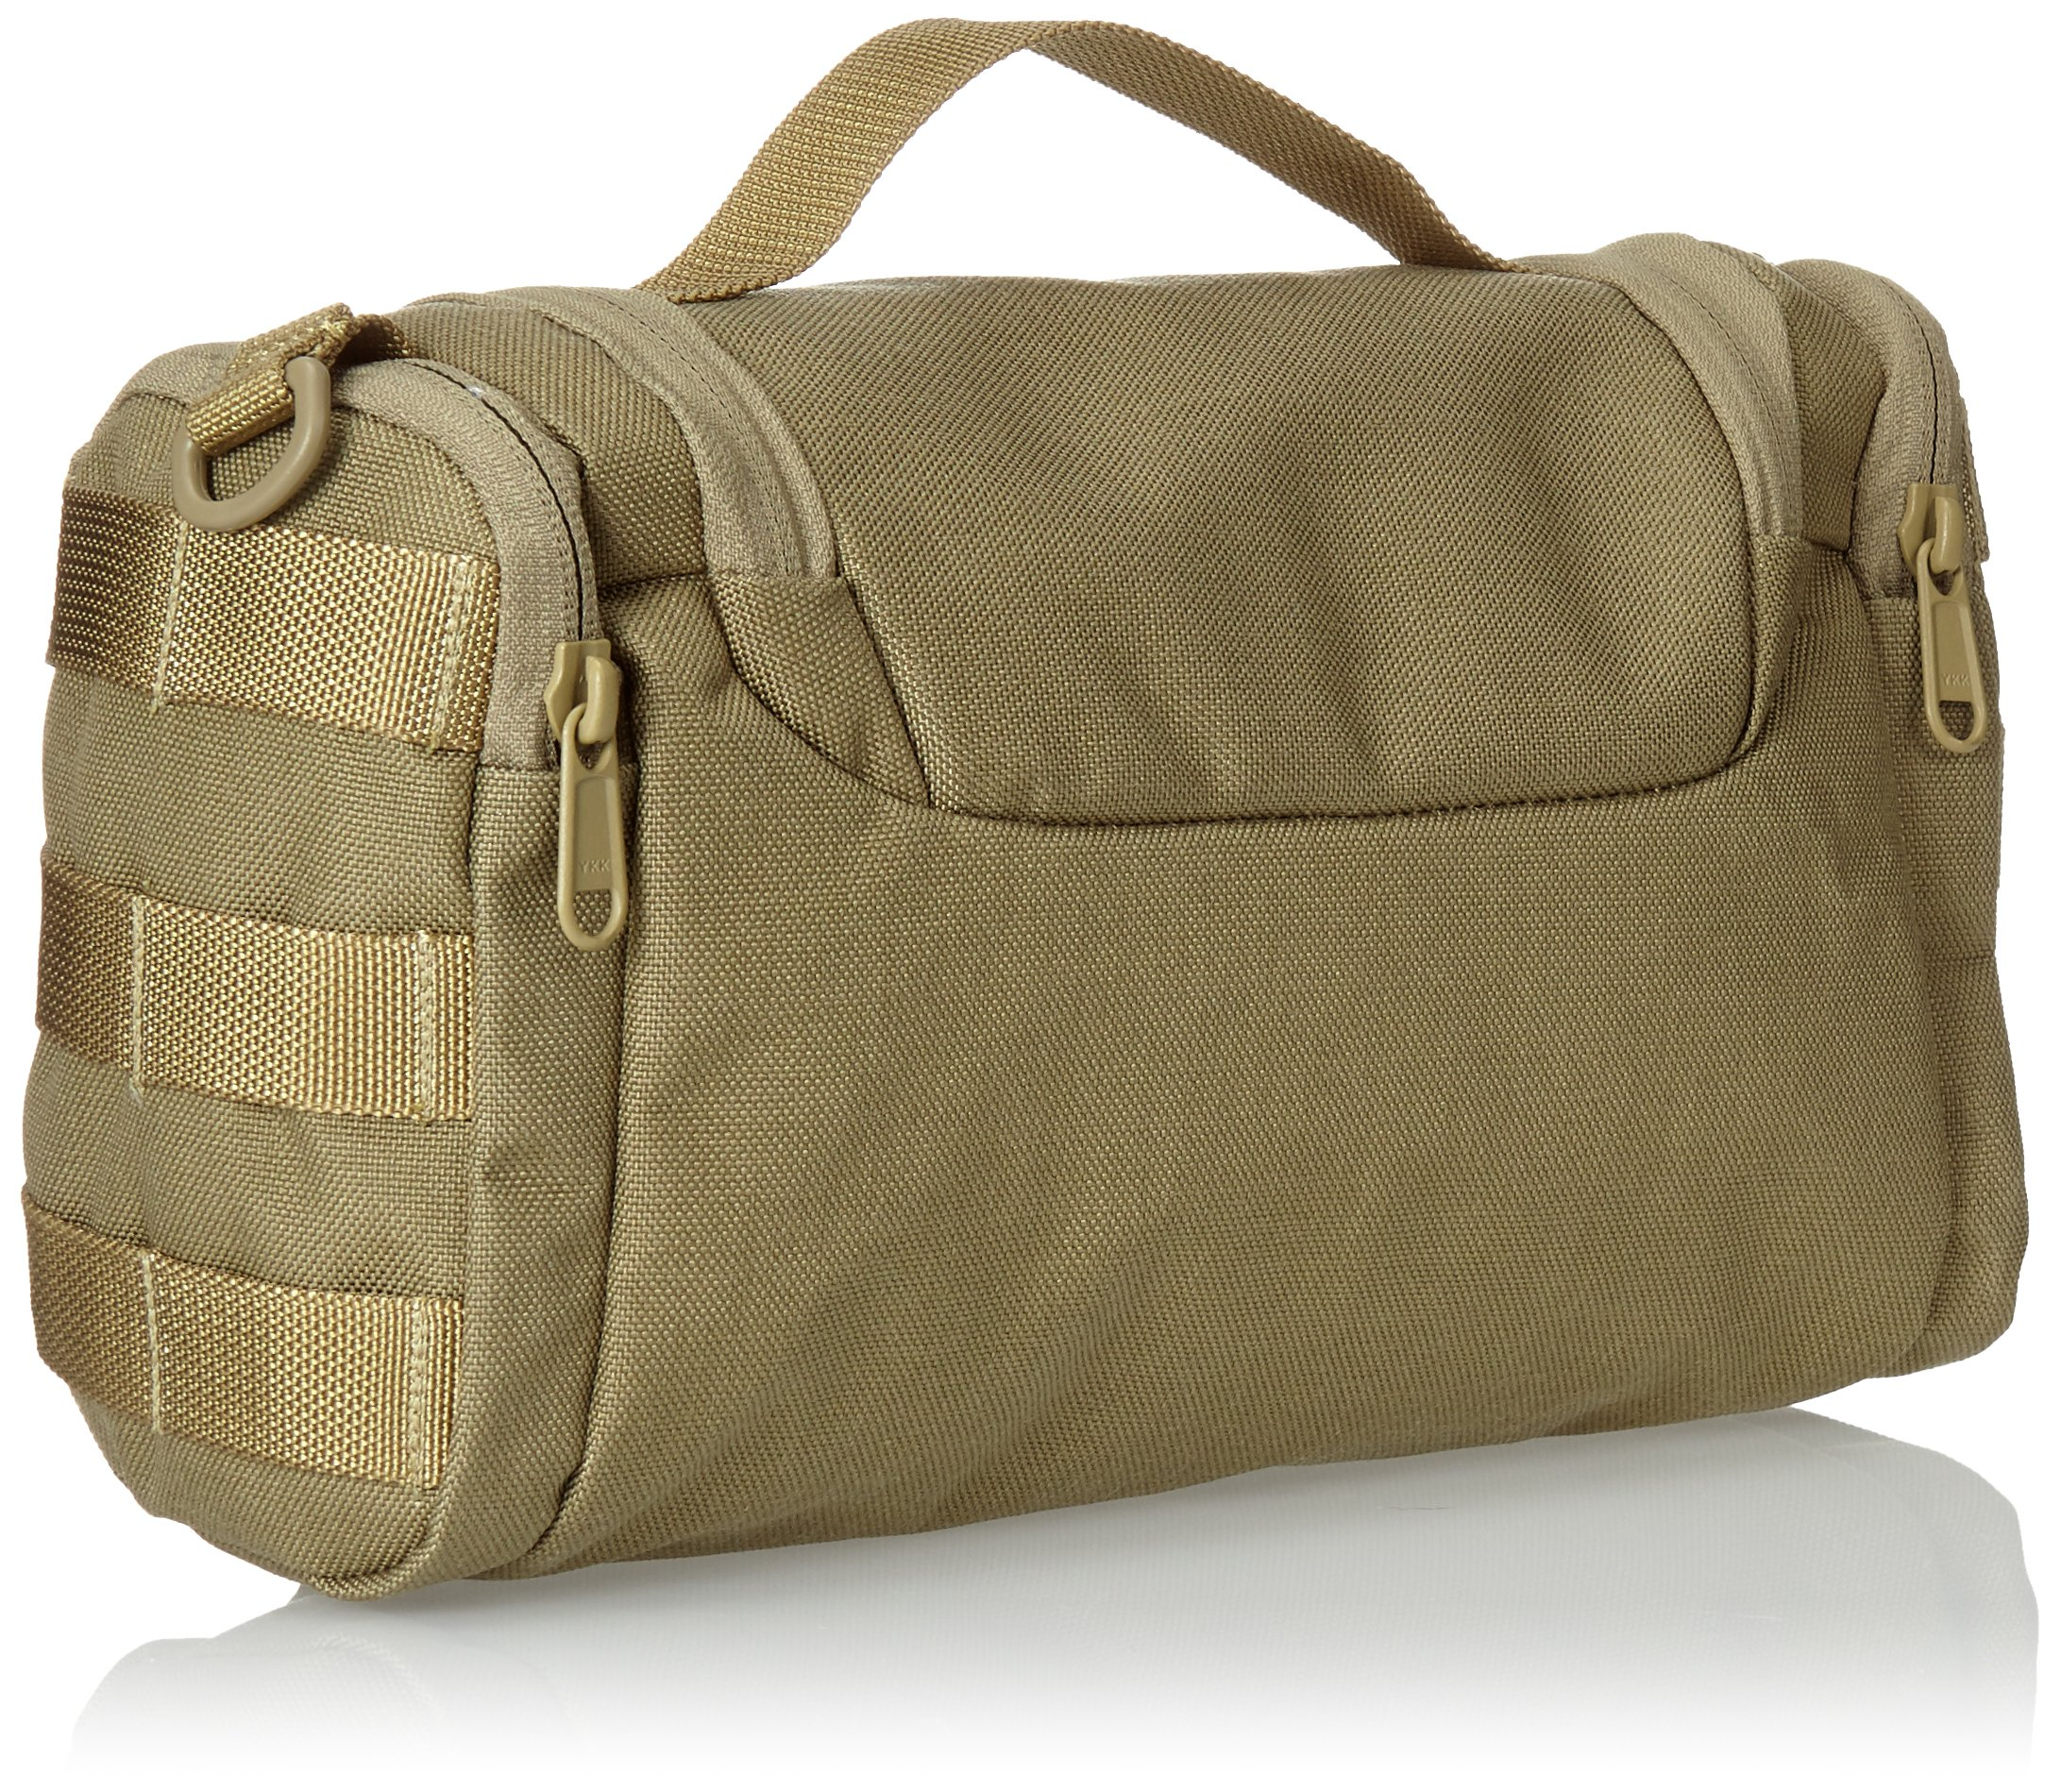 Maxpedition Gear Aftermath Compact Toiletries Bag, Khaki by Maxpedition (Image #2)